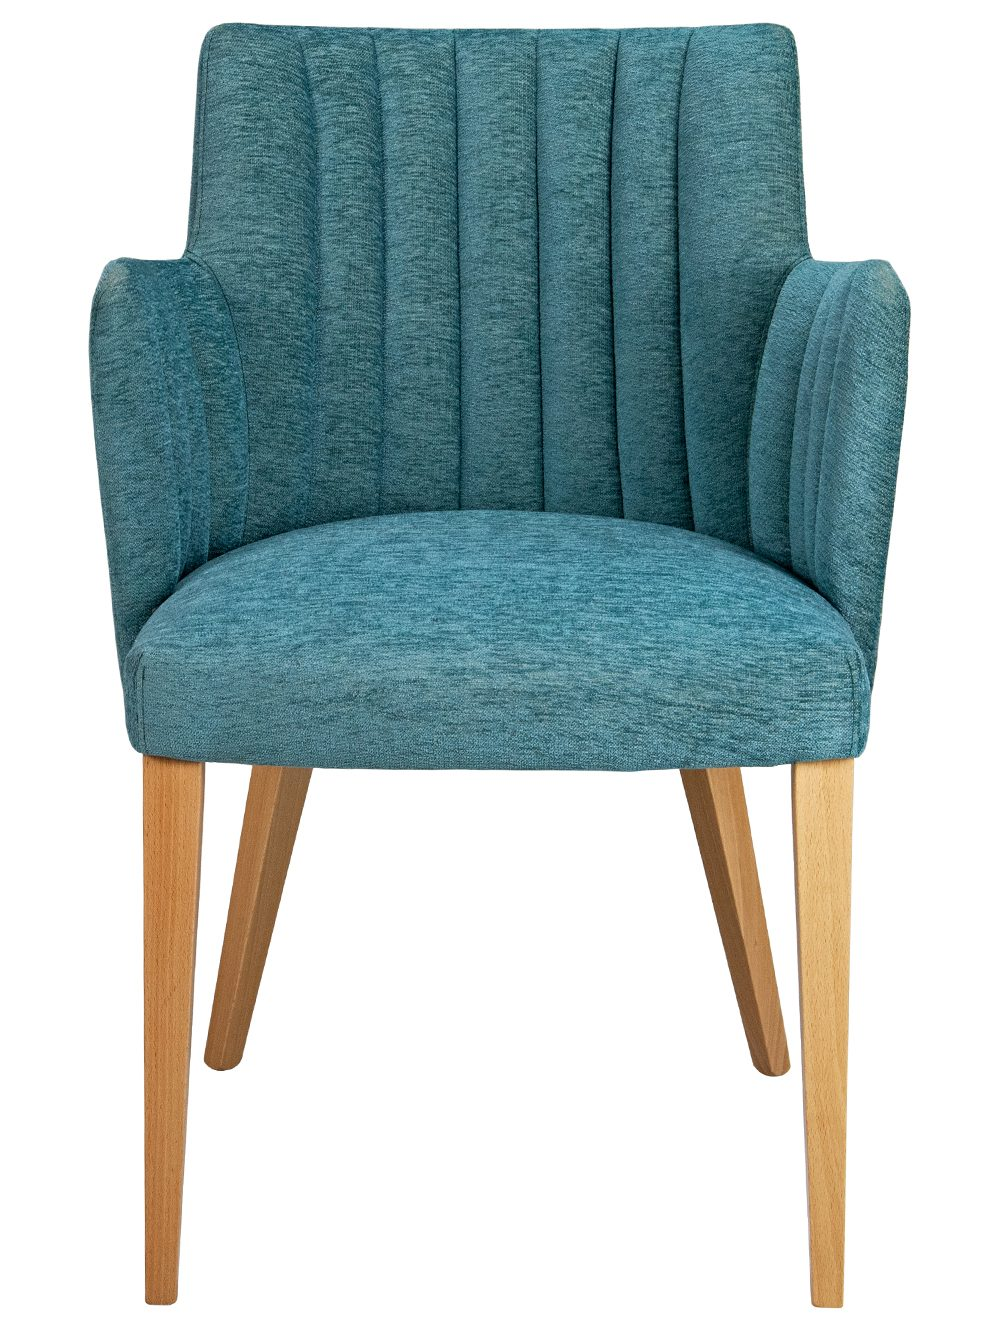 Custom Louvre Arm Chair Blue